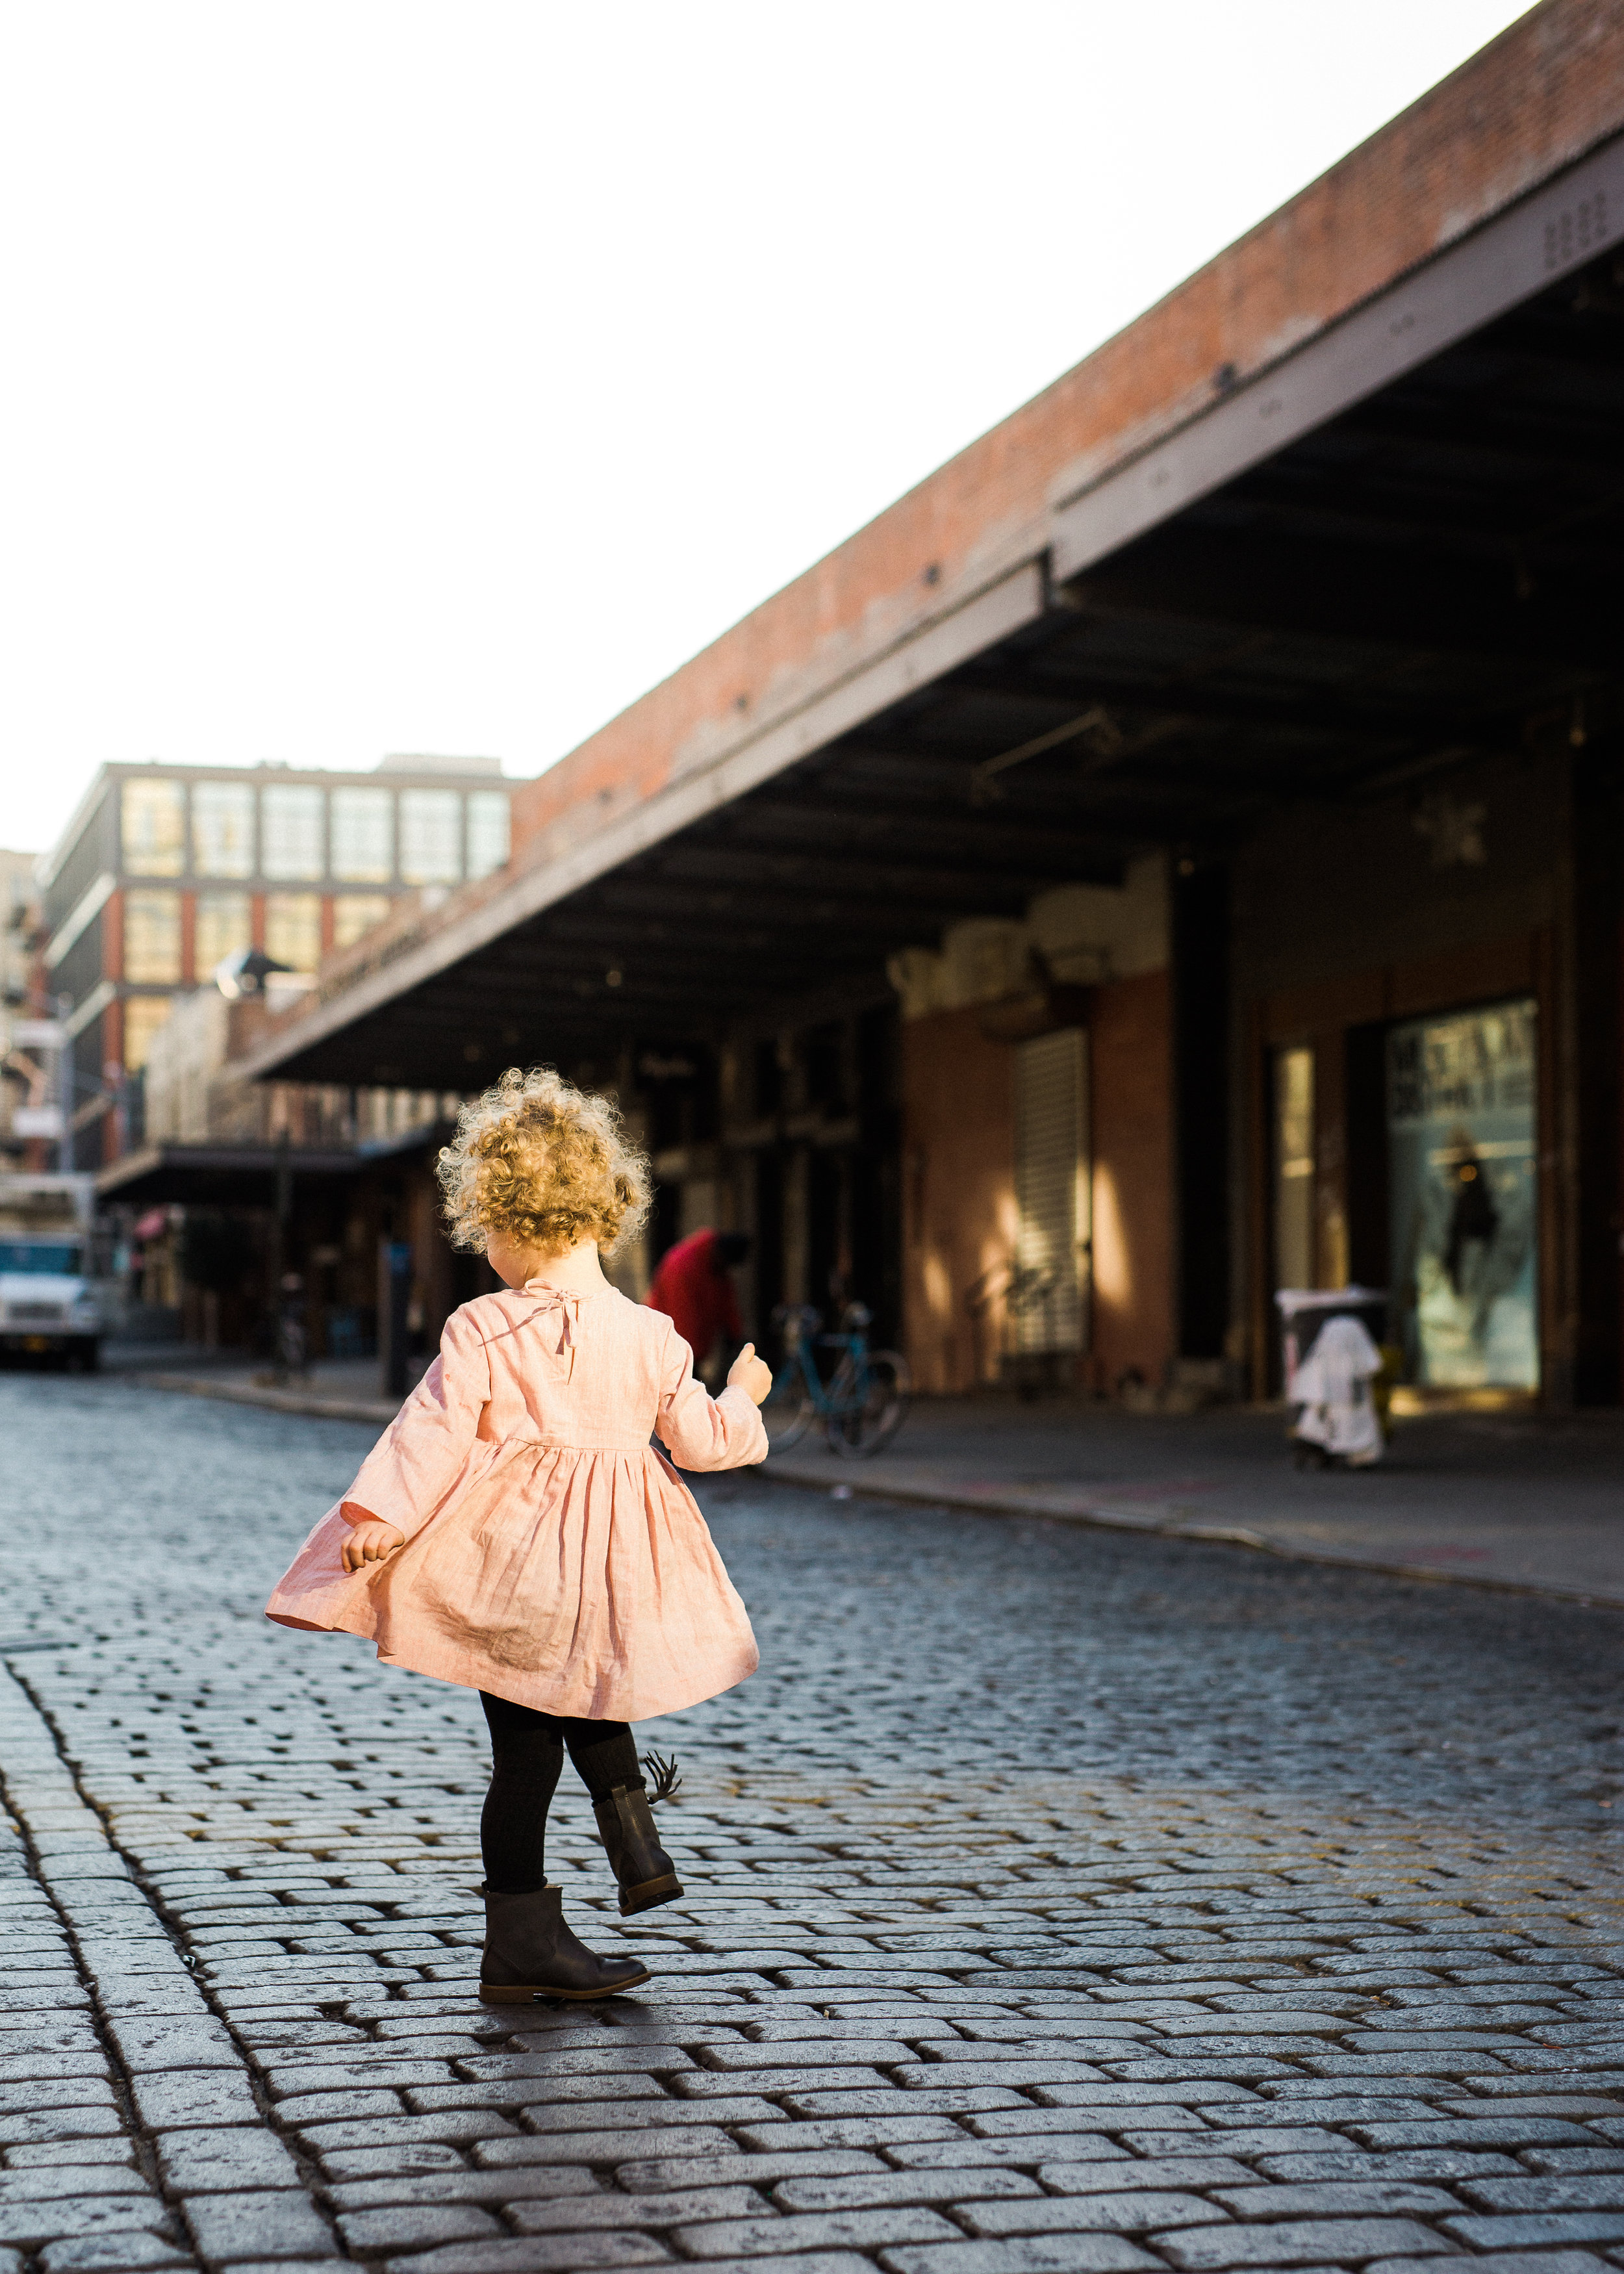 fritsch-family_highline-west-village-nyc-photography-59.jpg